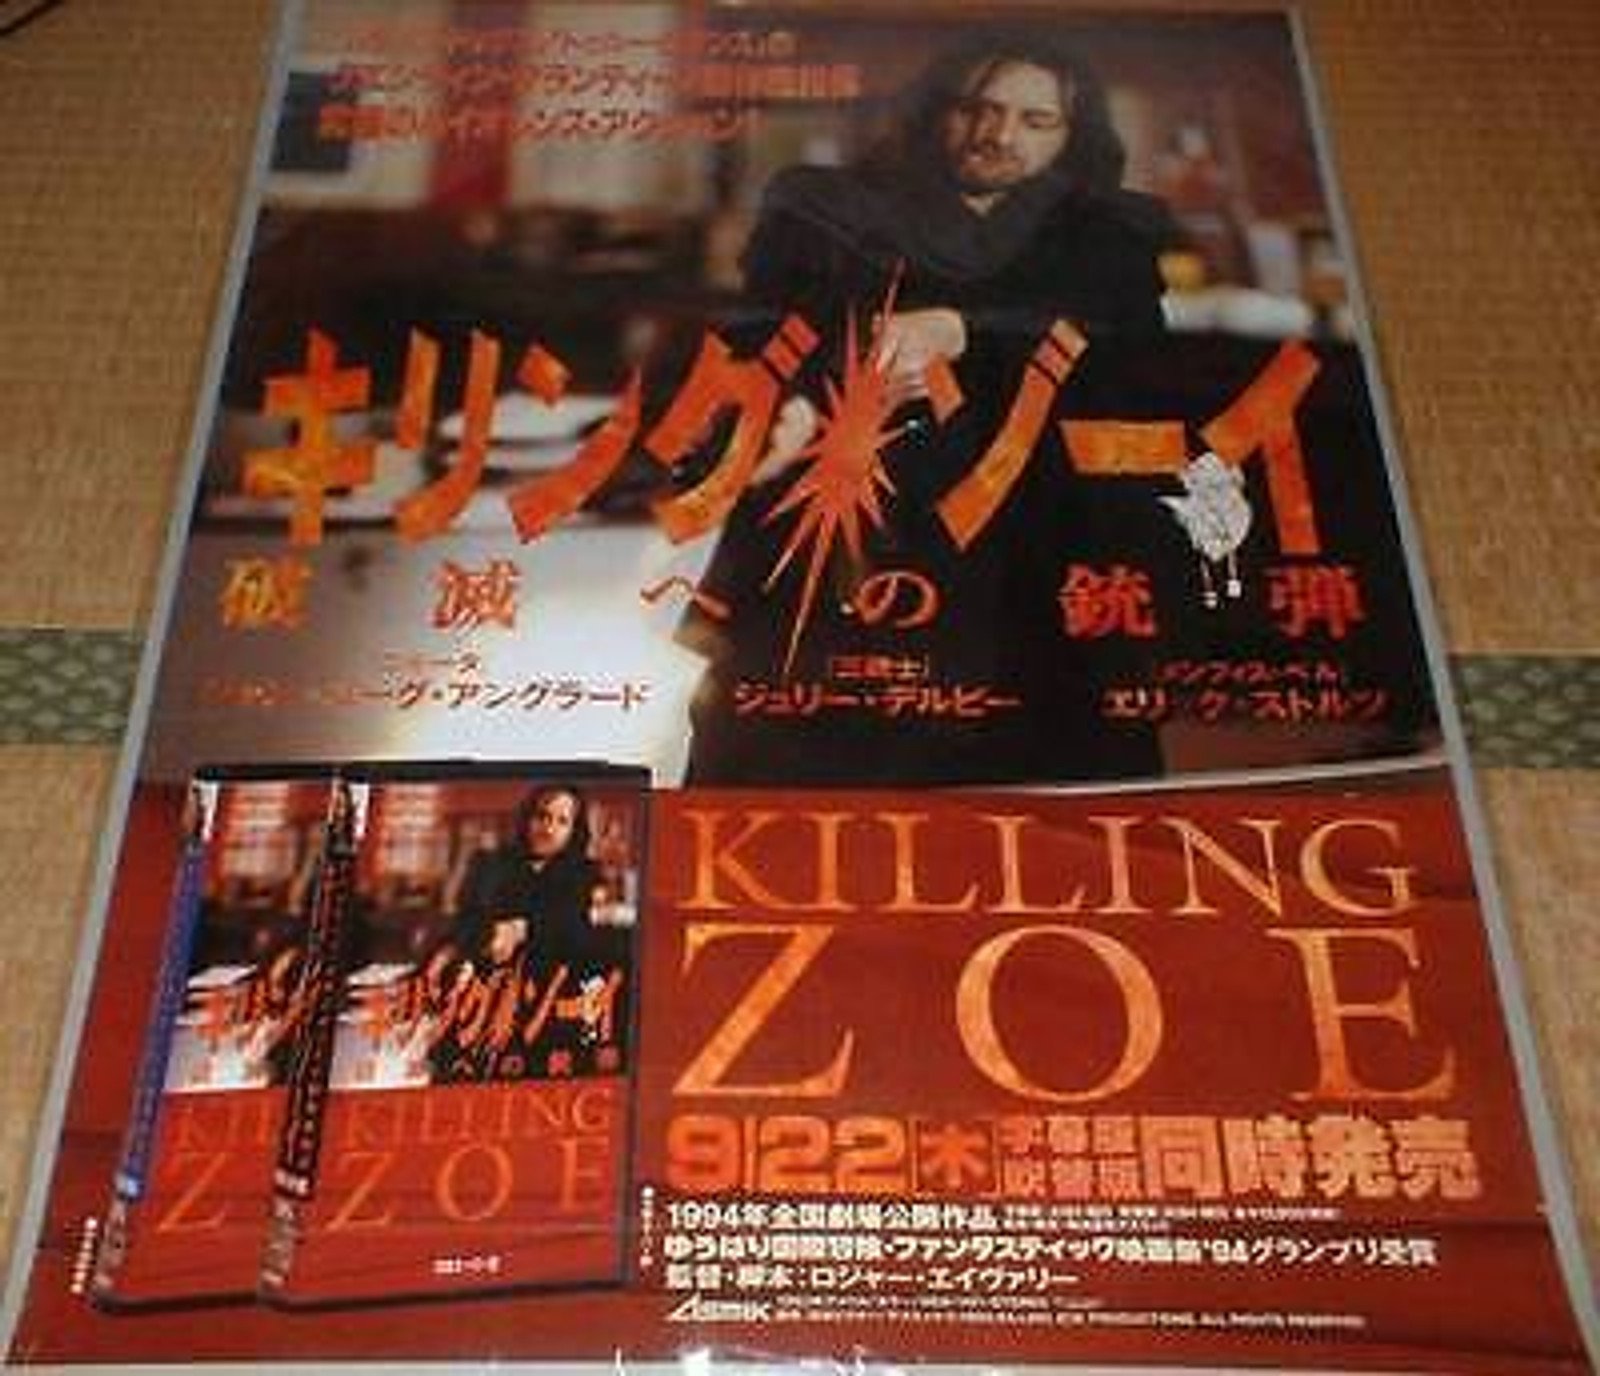 Killing Zoe MOVIE JAPAN VHS RLEASE PROMO POSTER not for sale